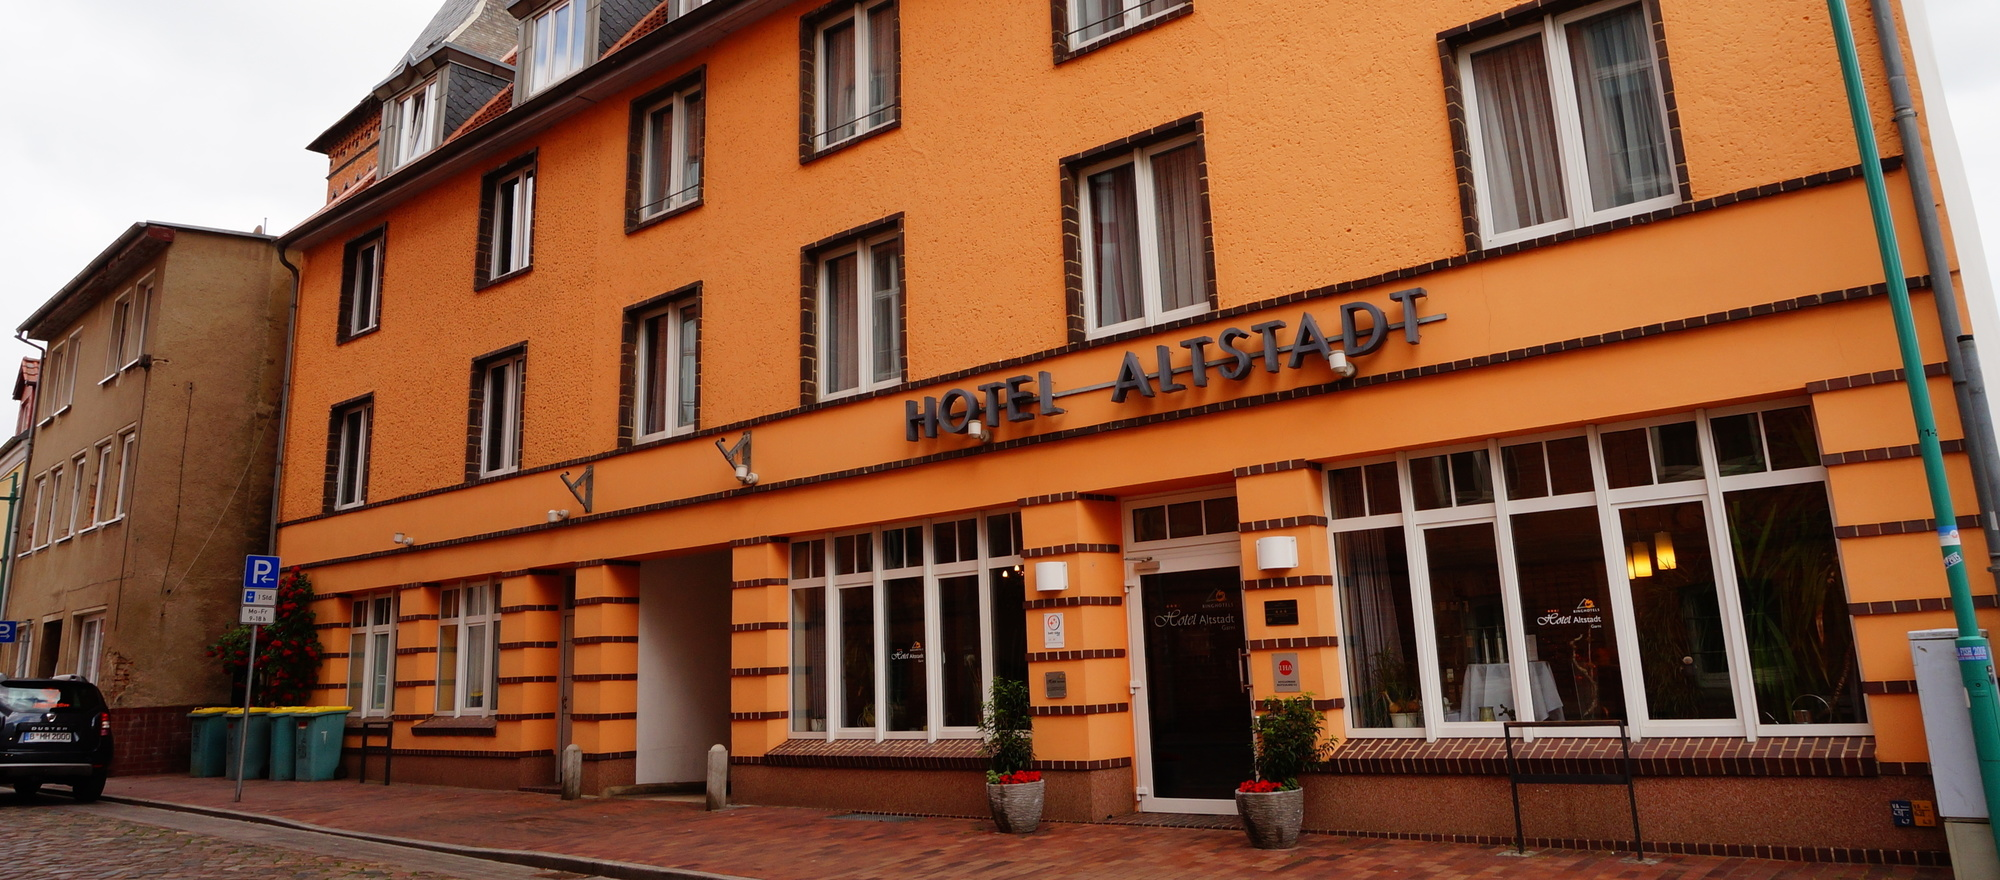 The 3-star-superior hotel Ringhotel Altstadt garni in Guestrow is located in the heart of Guestrow's historic town